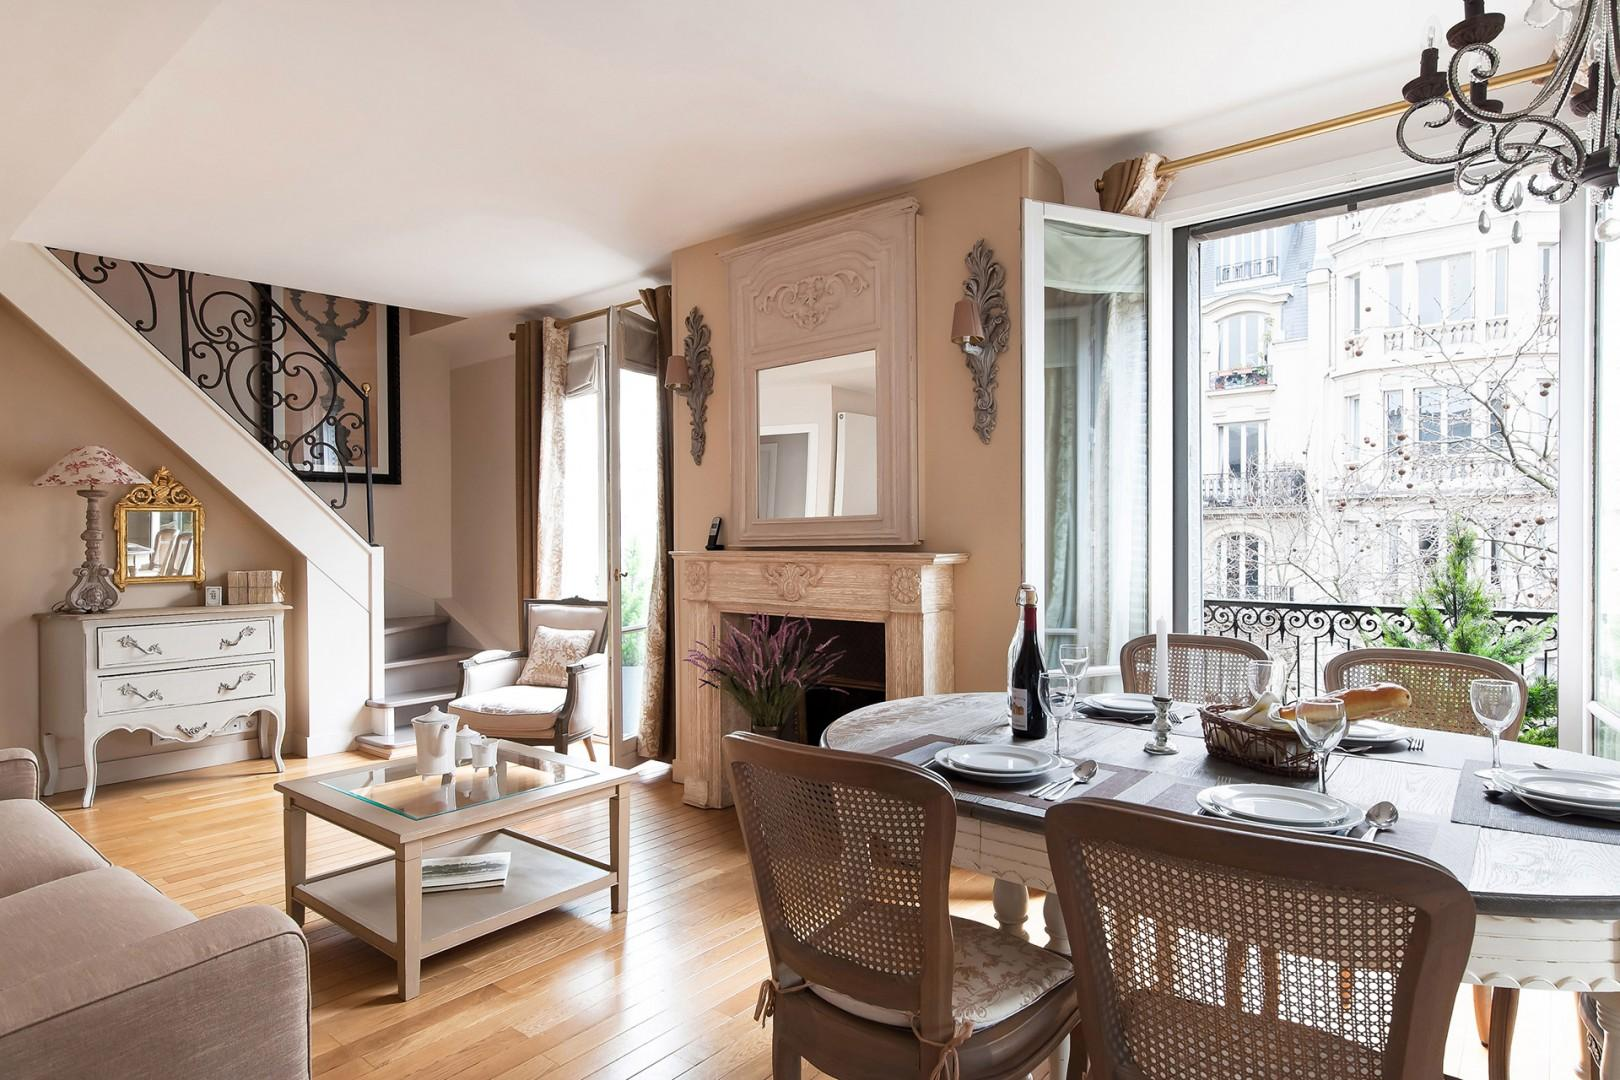 Enjoy eating at home at the full dining table.